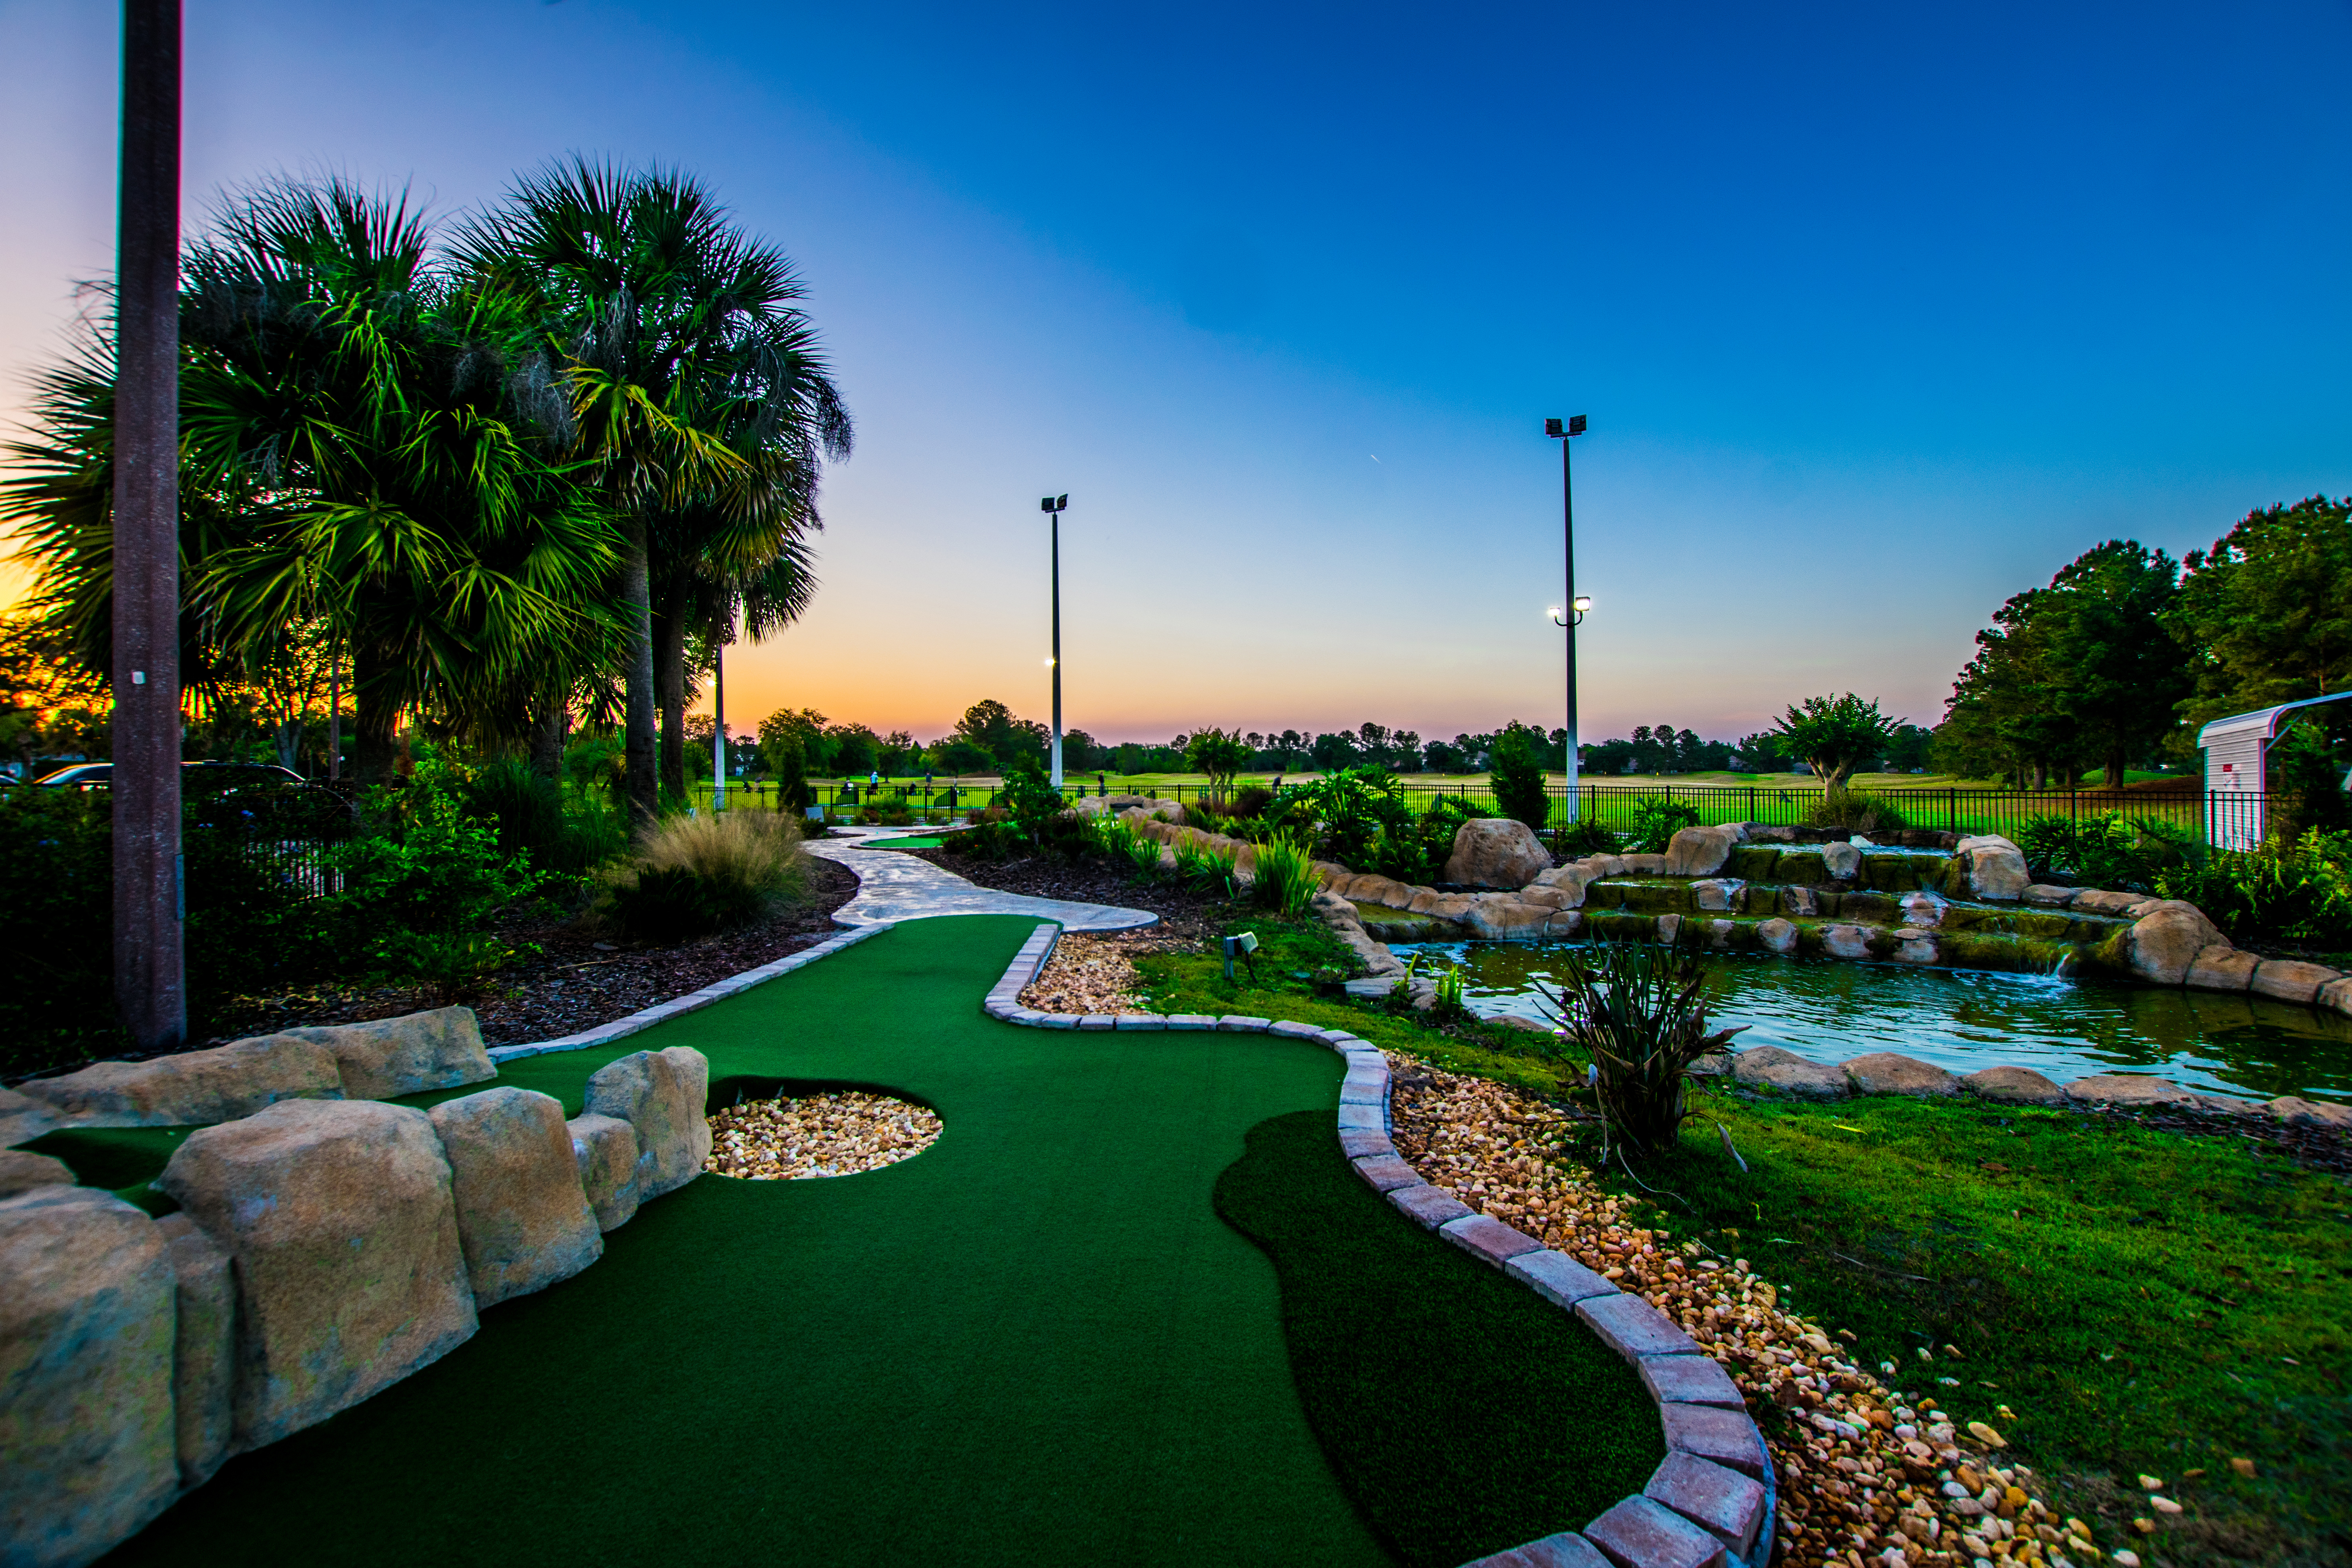 Miniature golf pictures #2